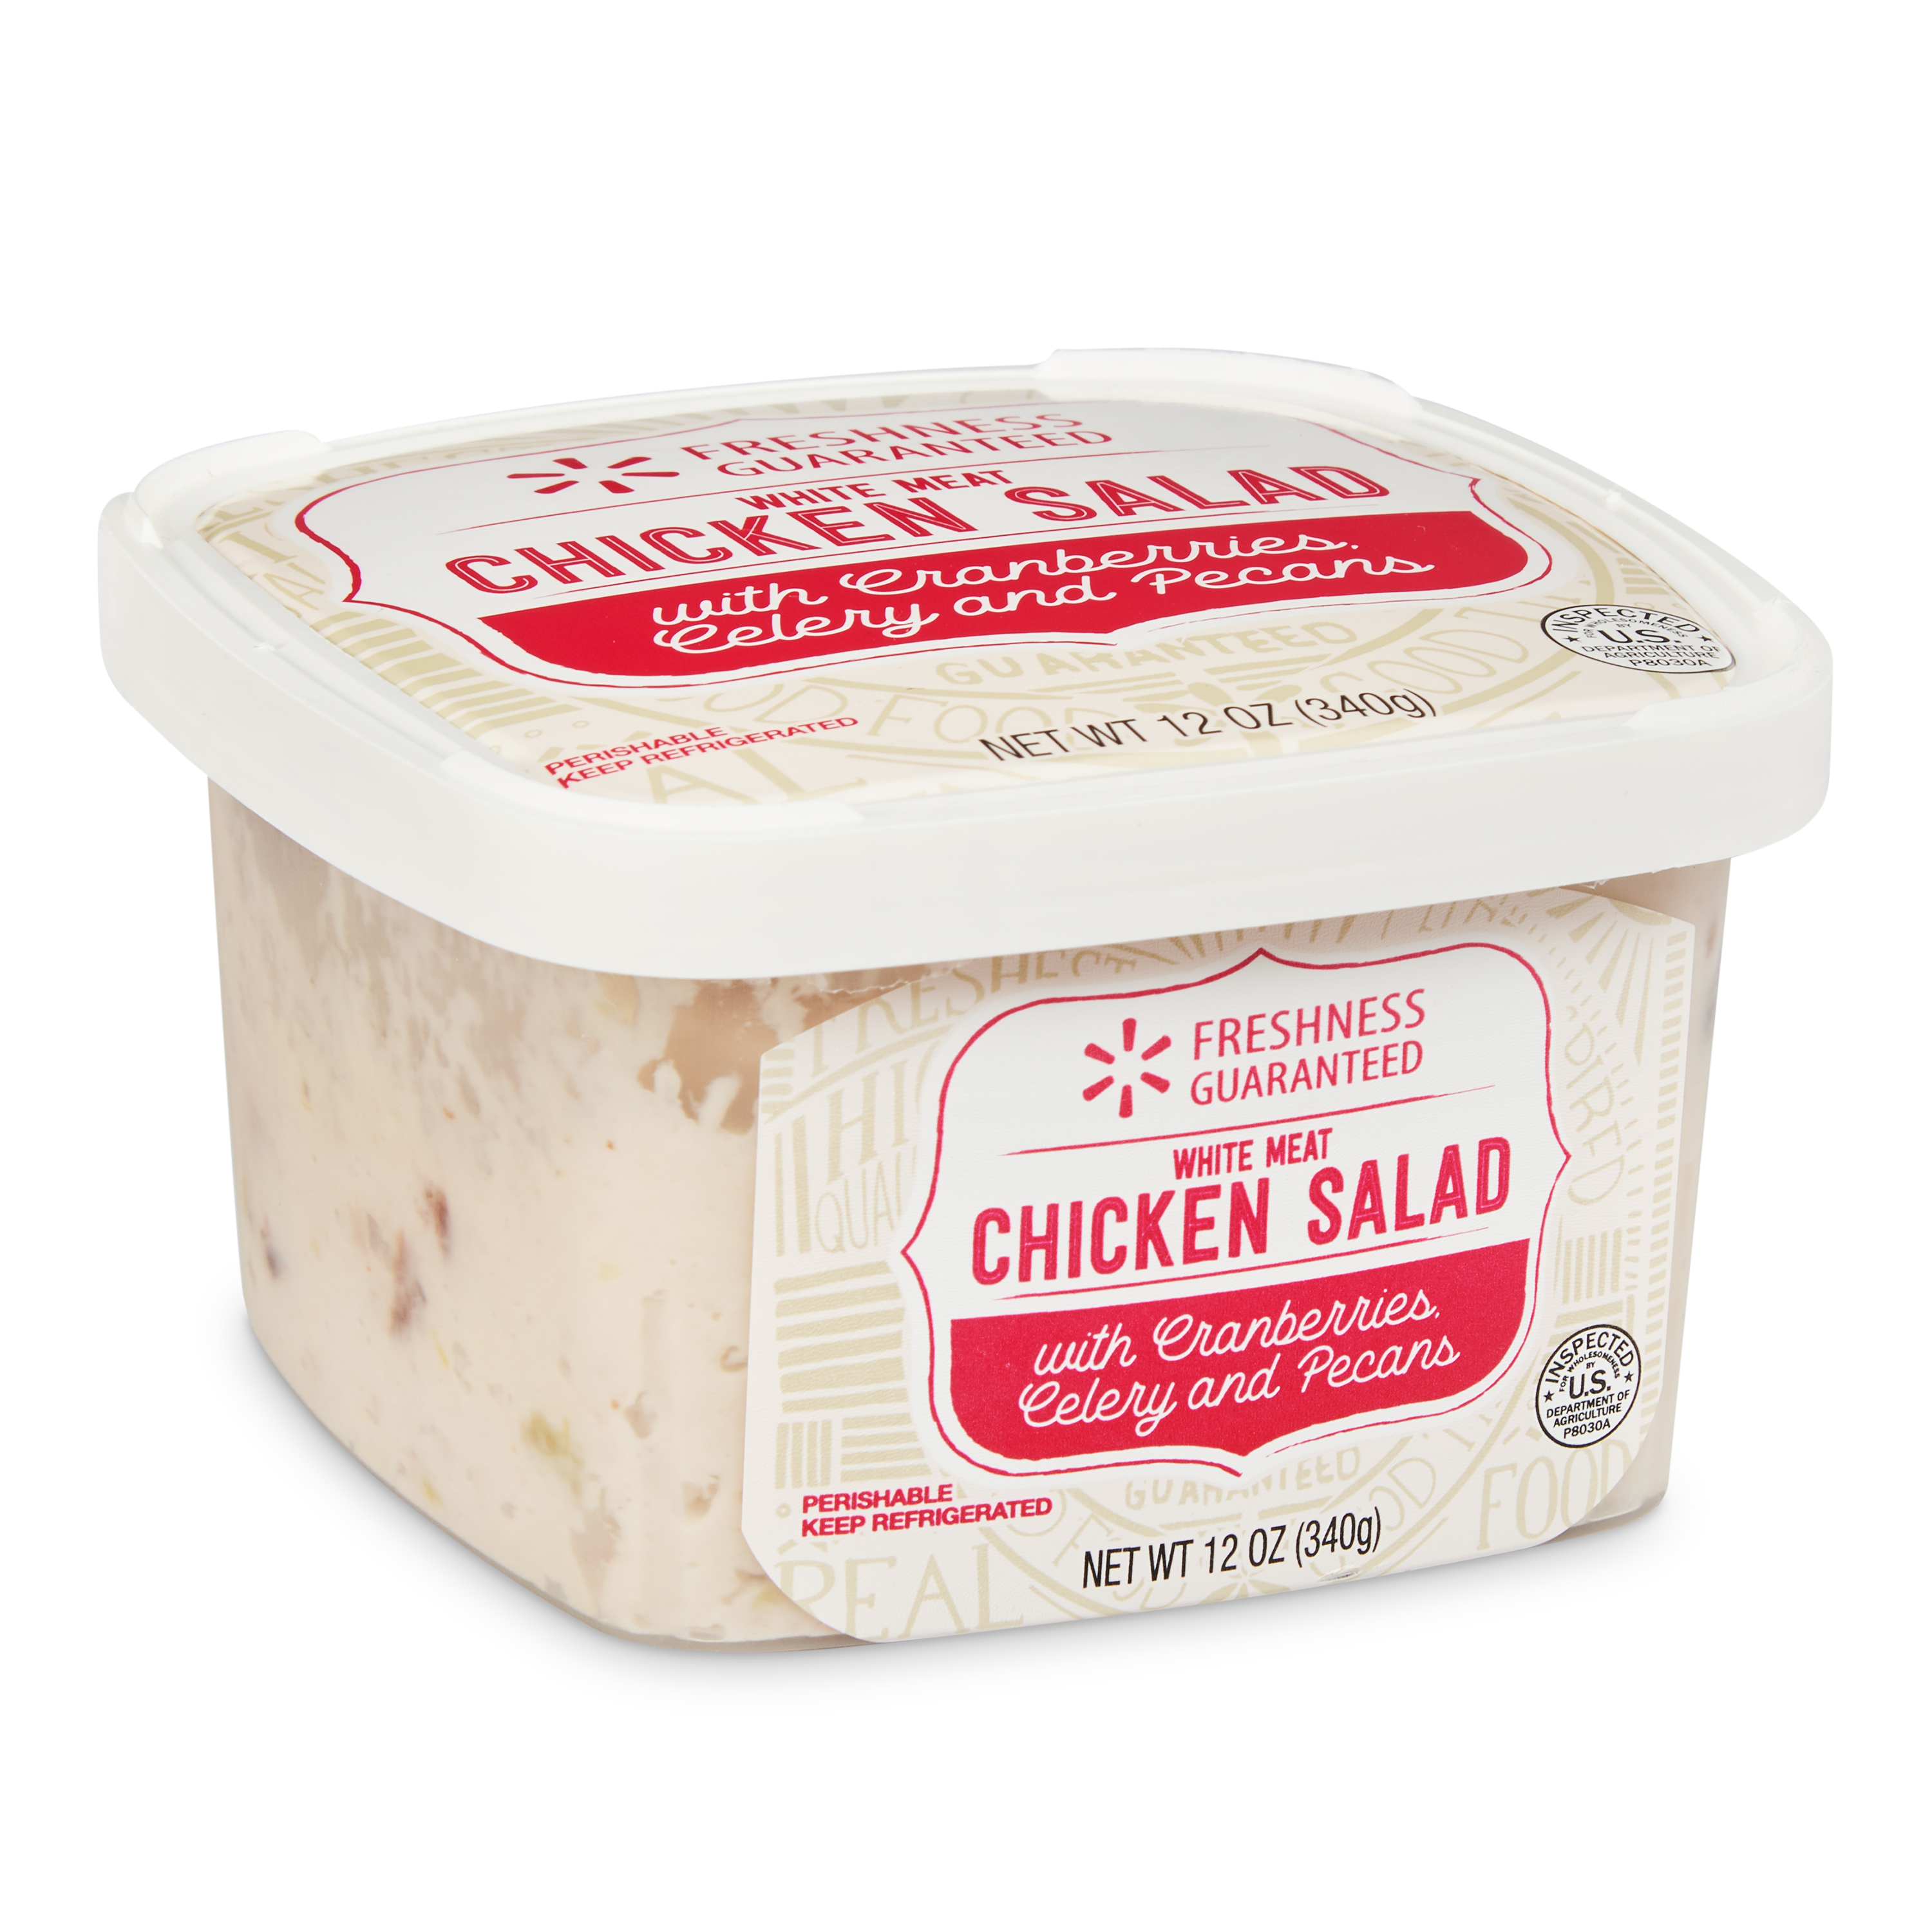 Freshness Guaranteed White Meat Chicken Salad with Cranberries, Celery, and Pecans, 12 oz